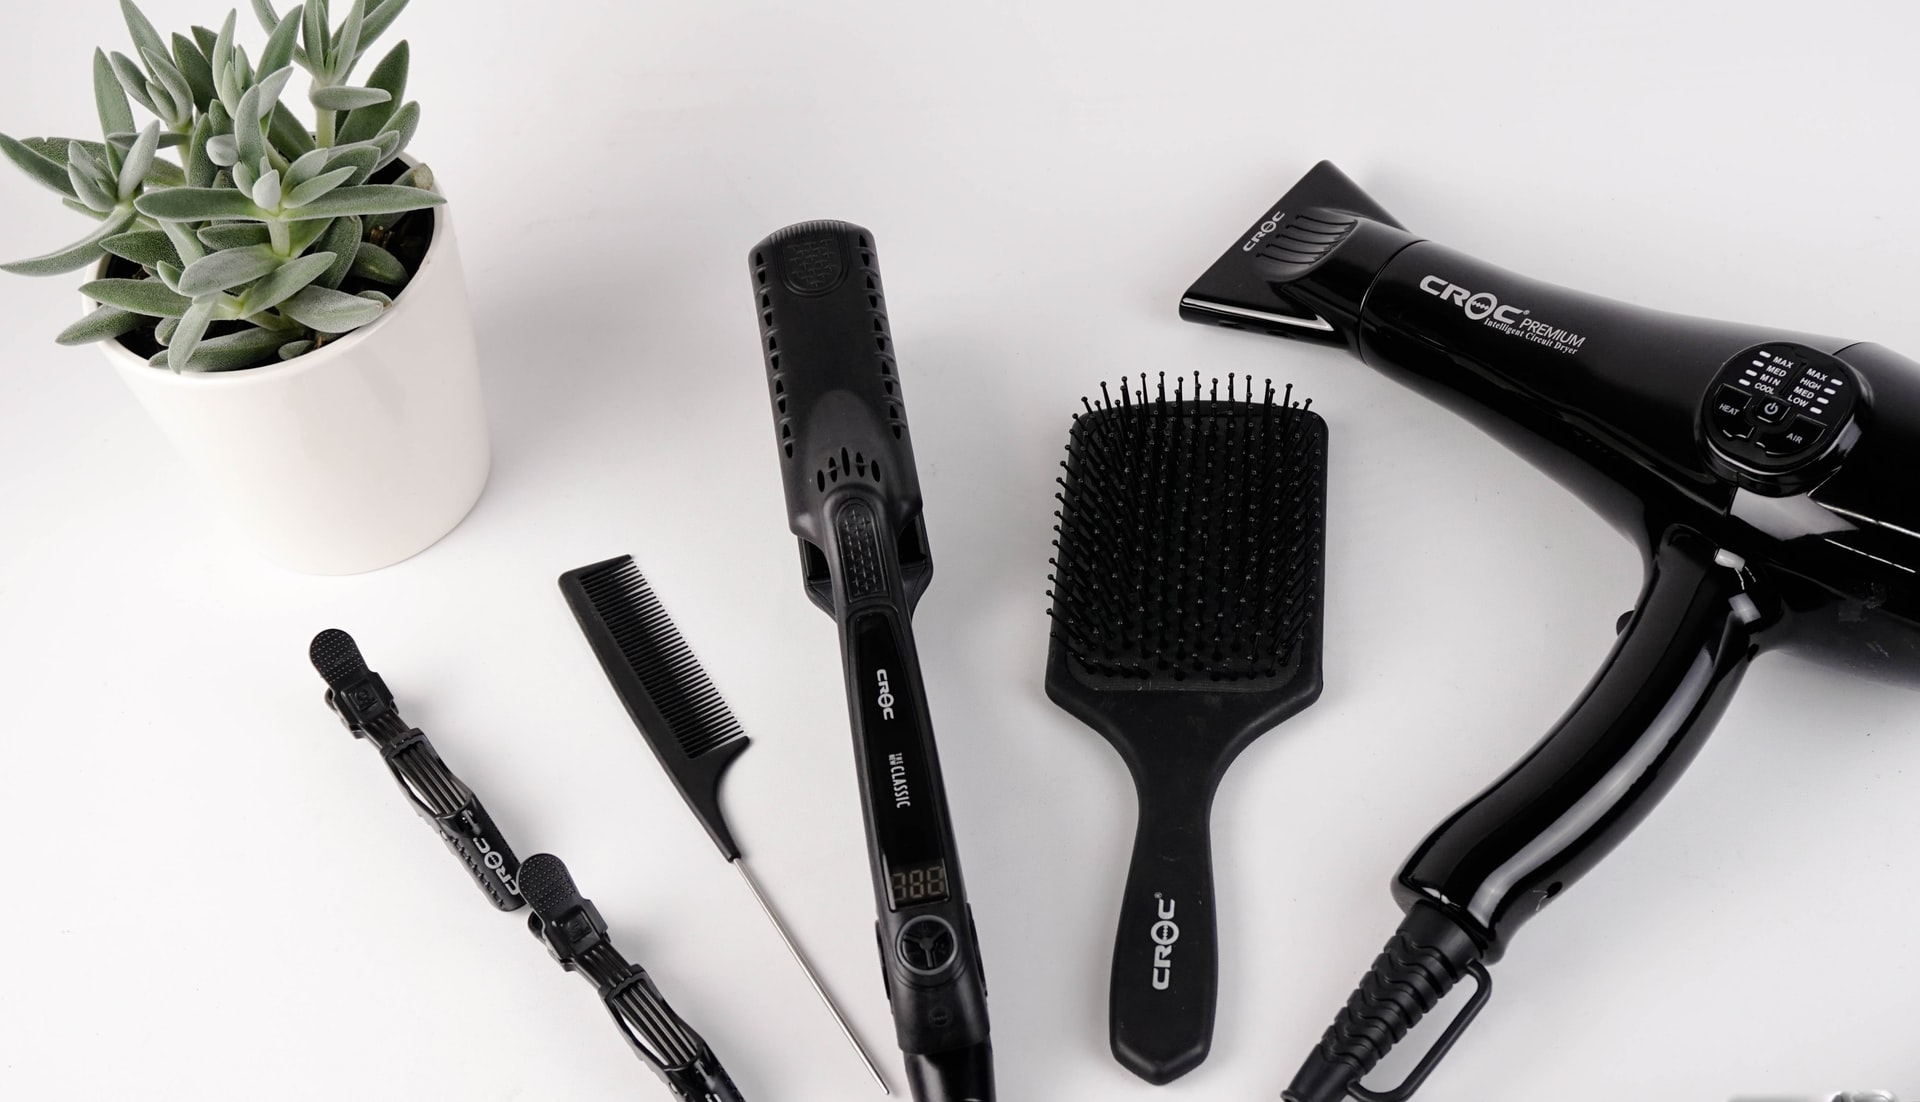 Top 5 Hair Styling Tools That Can Make You Look Like A Diva